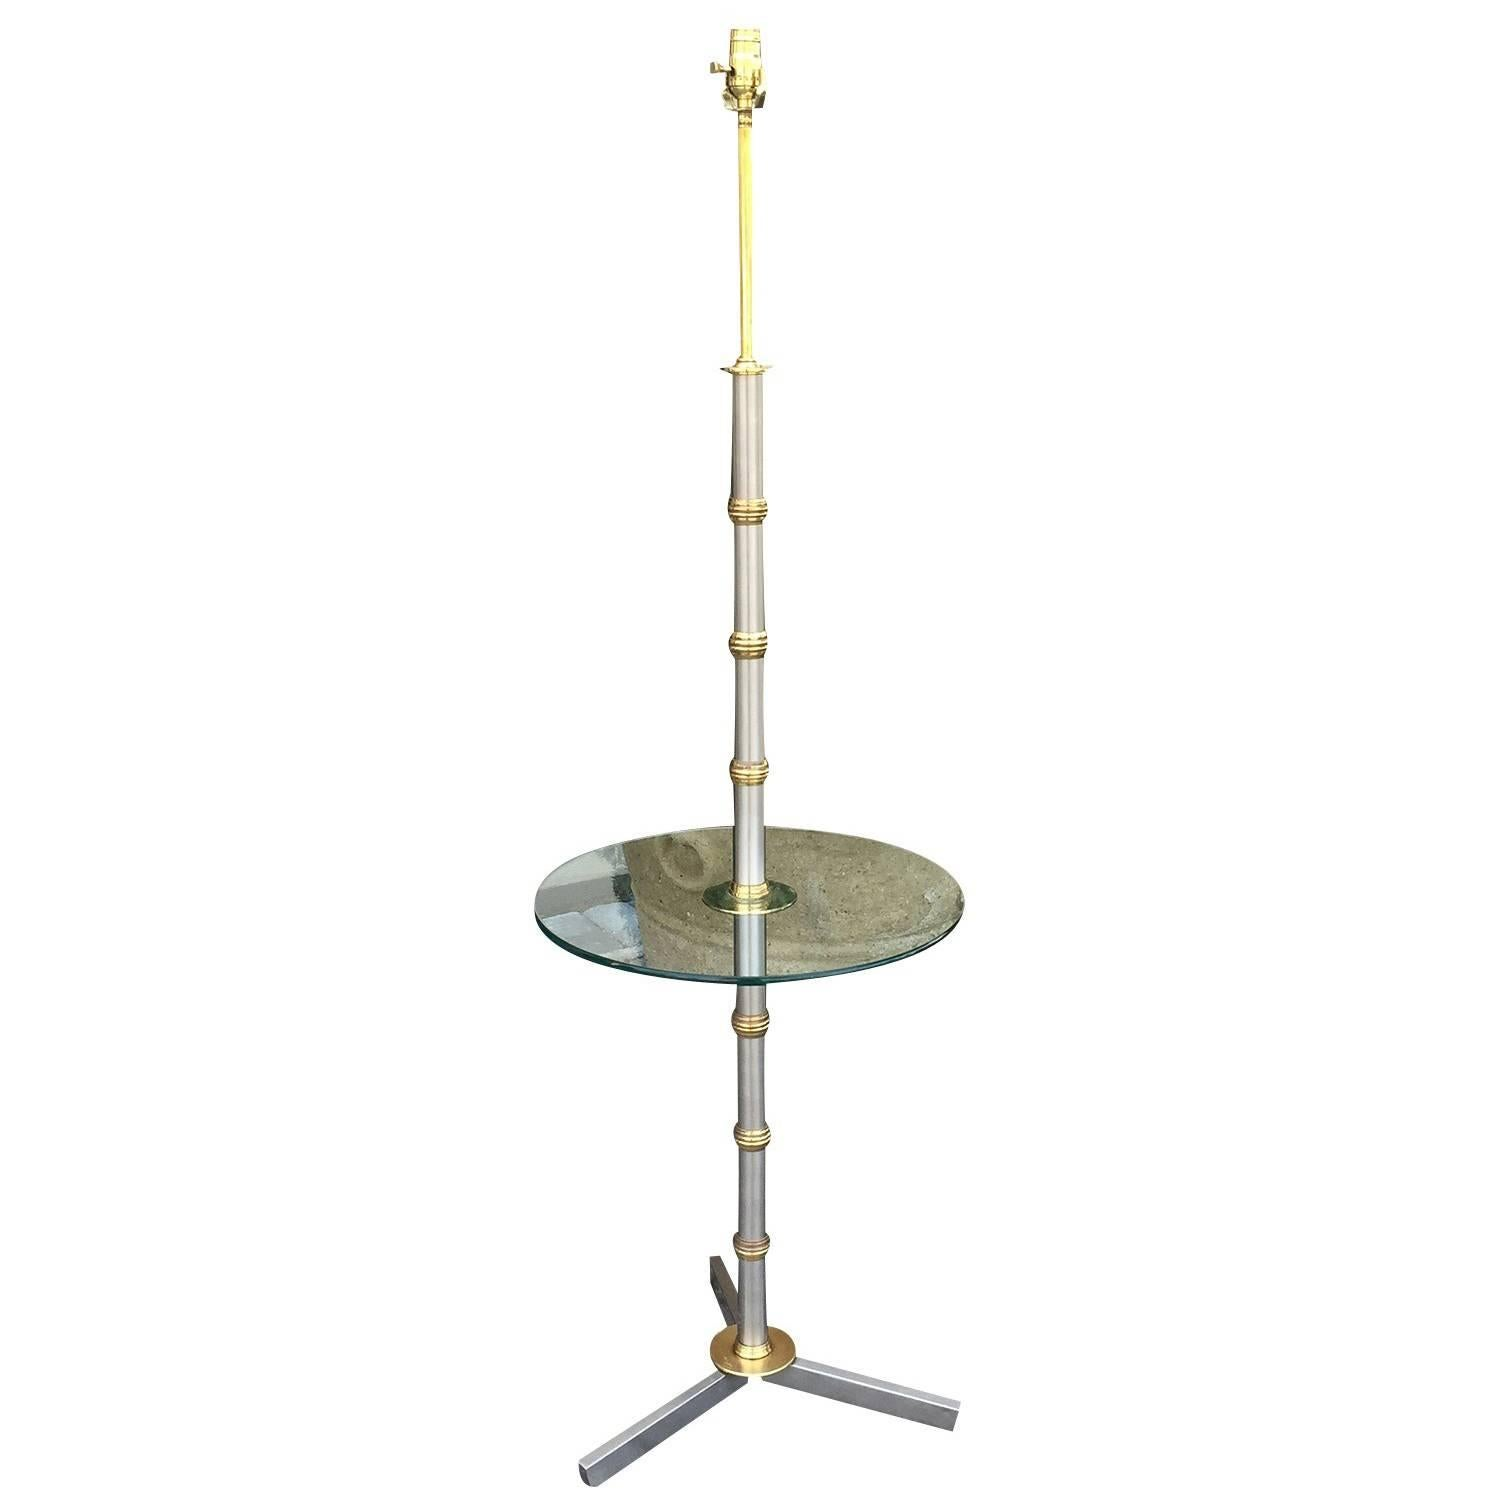 Brass and Steel Floor Lamp with Table, circa 1970